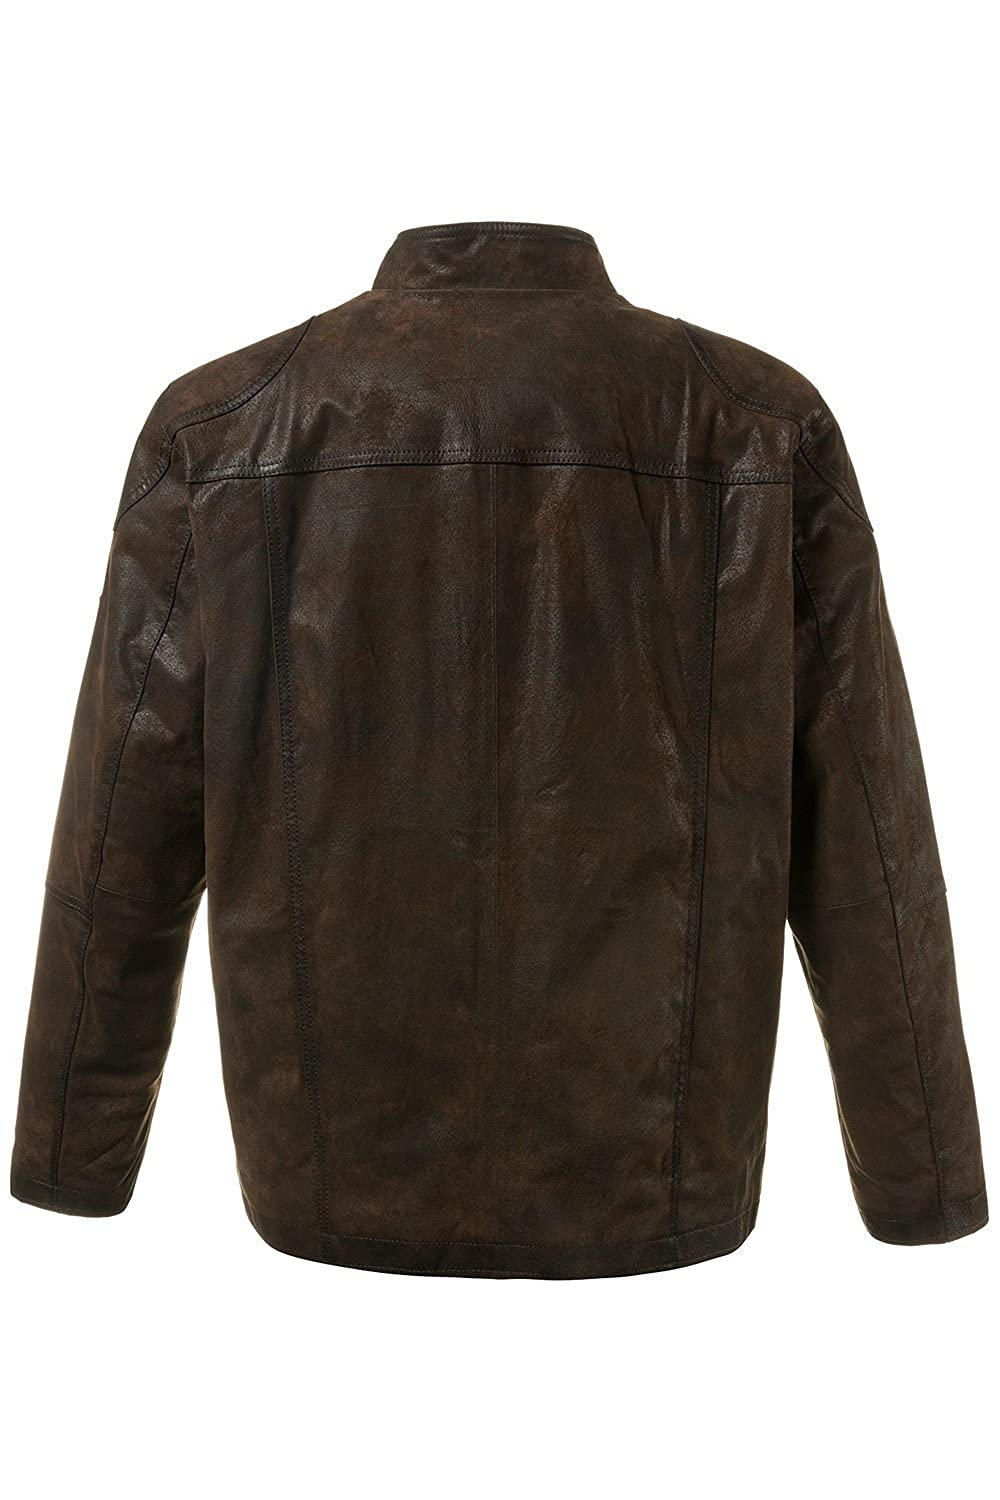 JP1880 Men's Big & Tall Full-Zip Leather Biker Jacket 708448